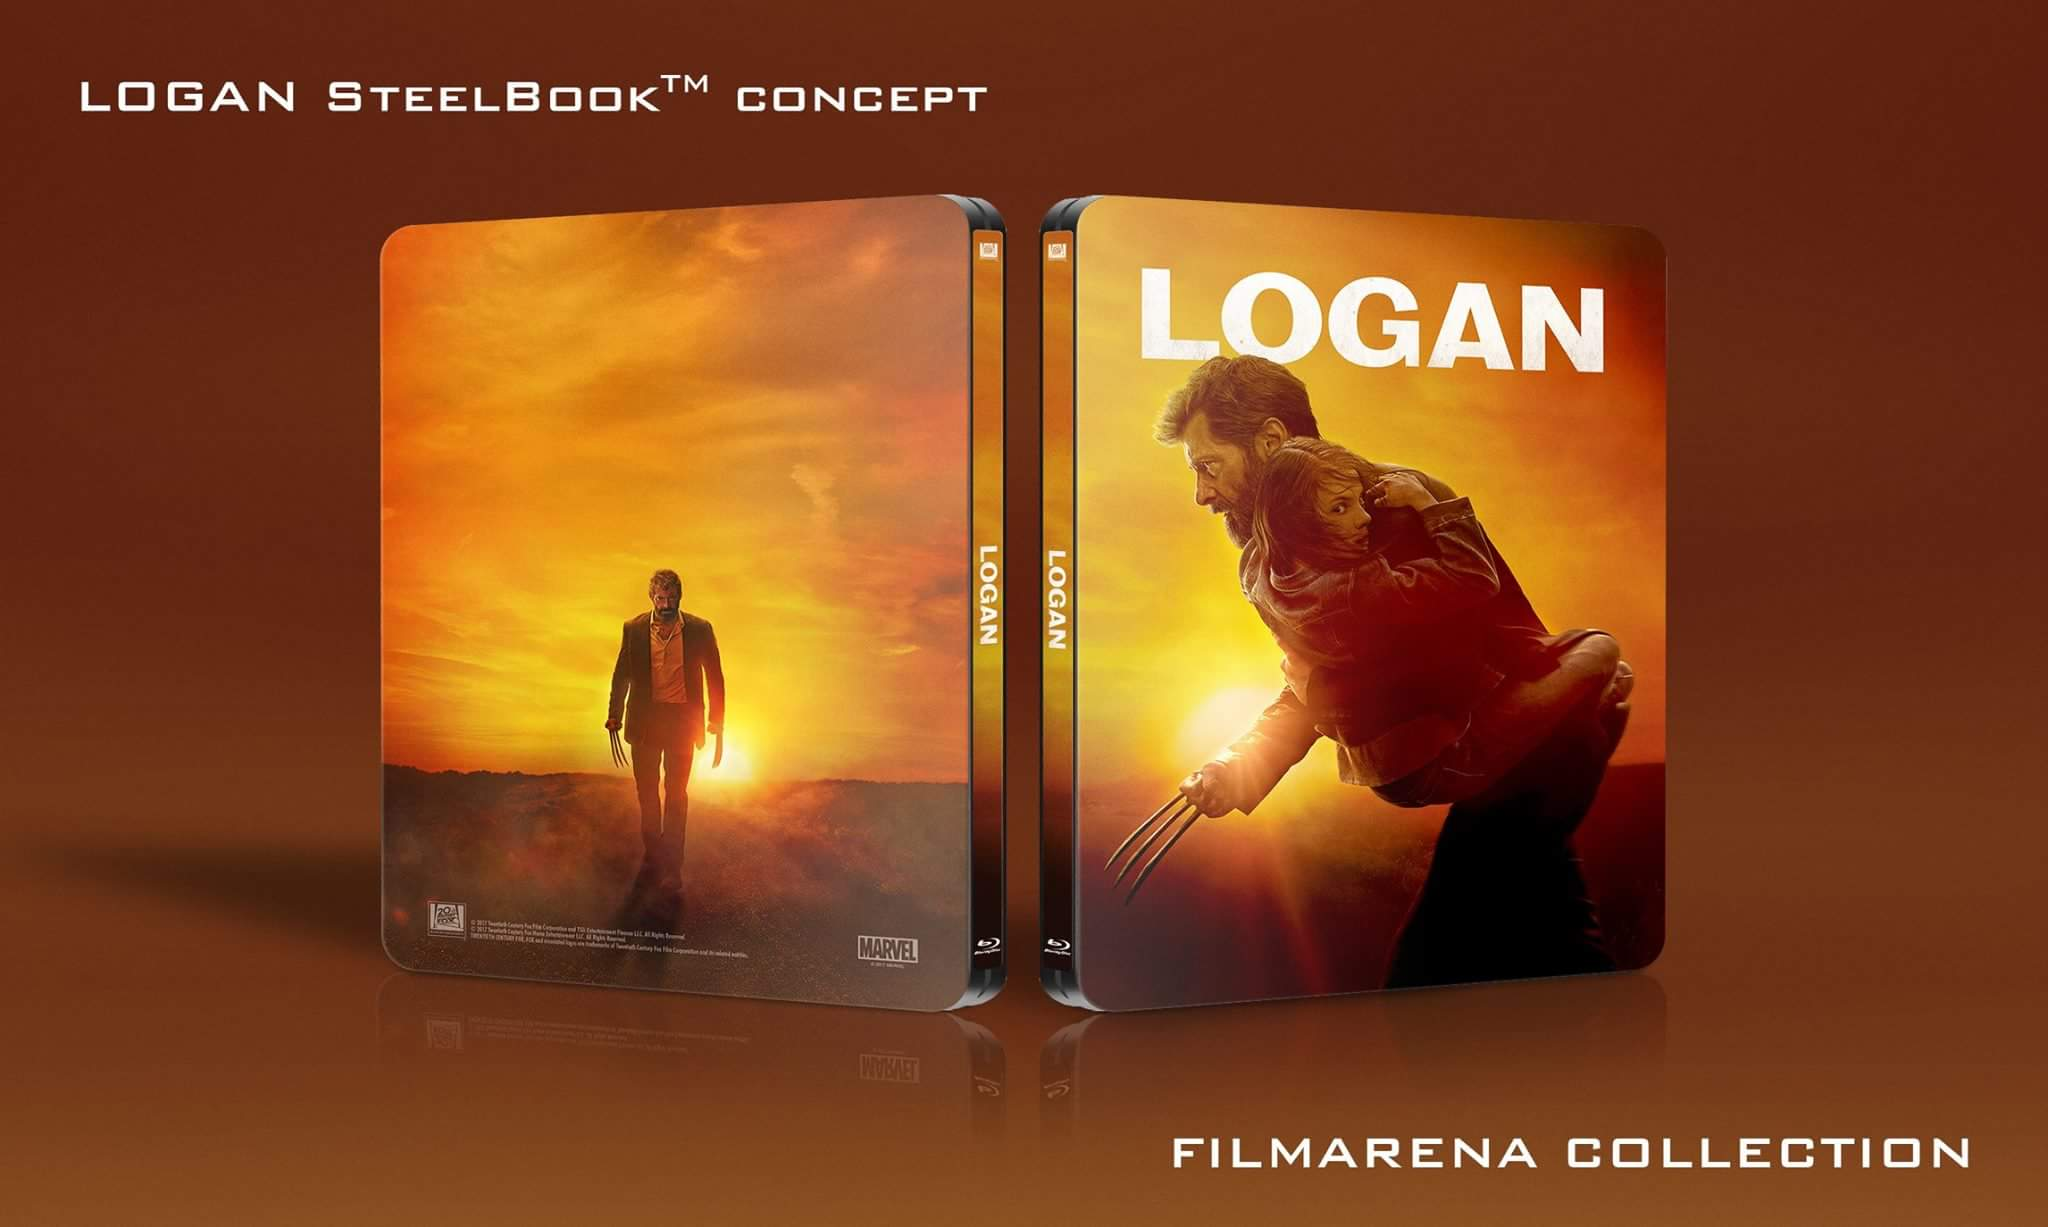 logan un steelbook exclusif filmerana maj aper u steelbookpro l 39 actualit mondiale des. Black Bedroom Furniture Sets. Home Design Ideas